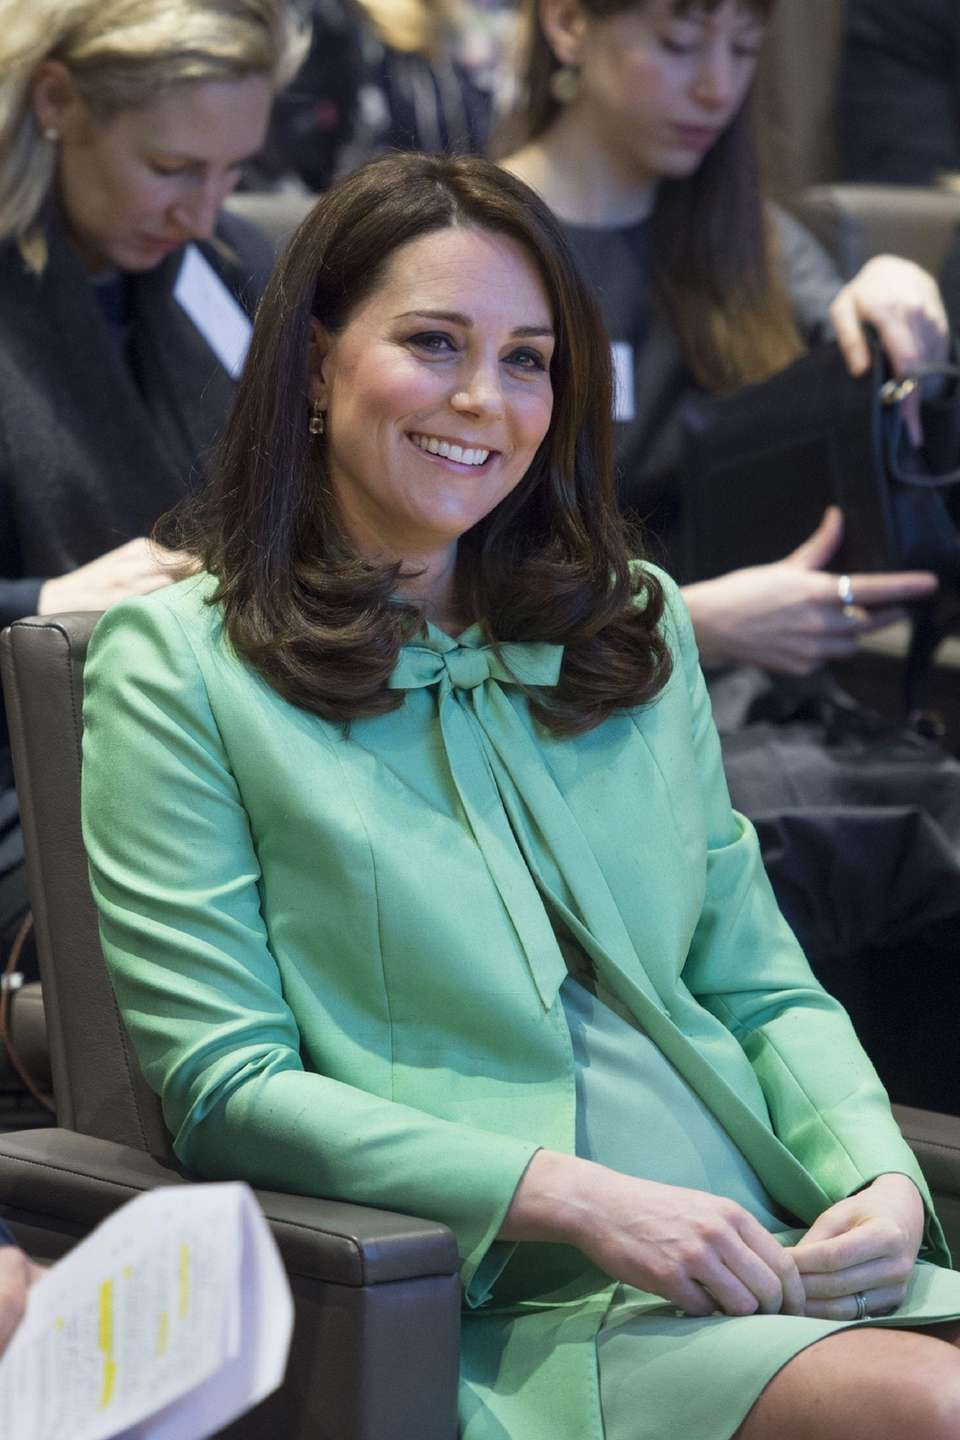 Catherine, Duchess of Cambridge during a symposium she